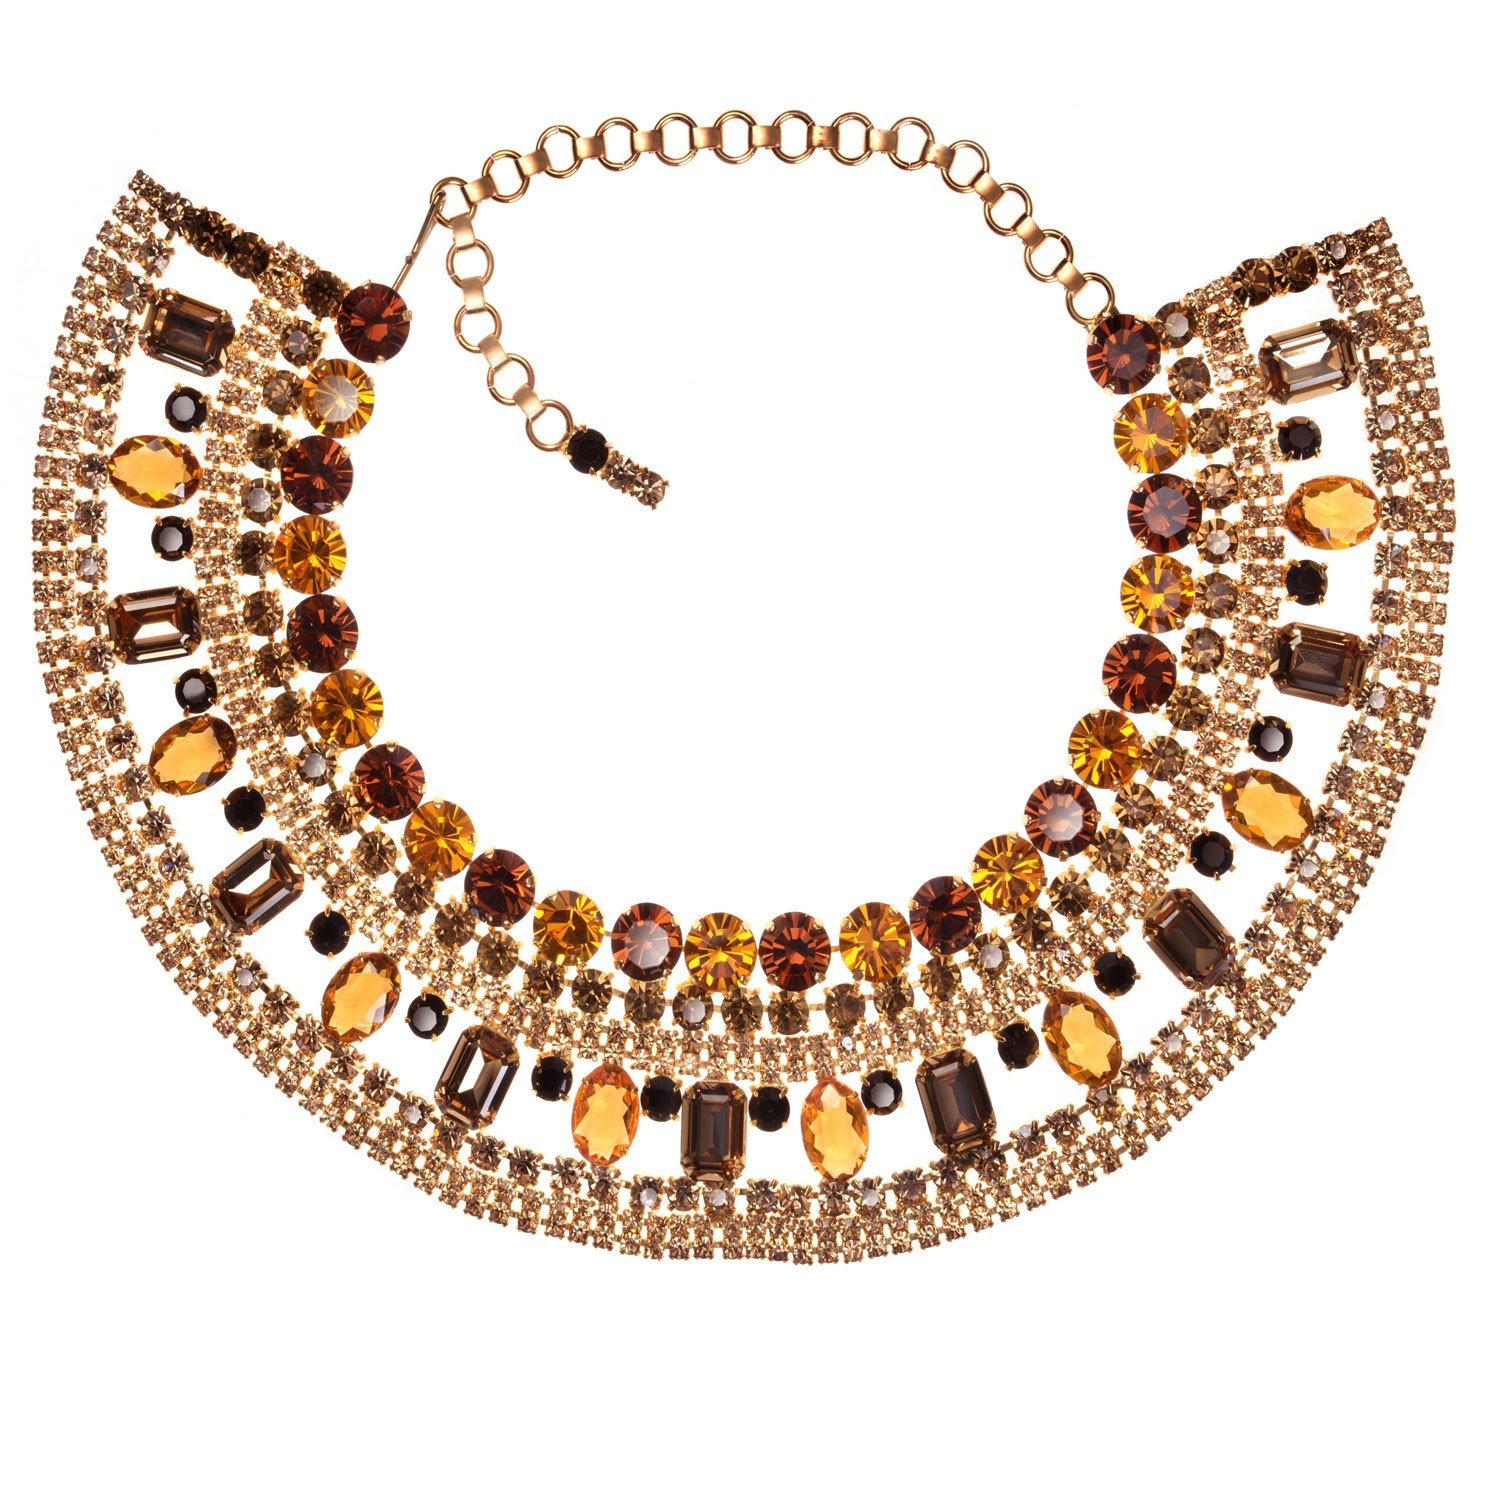 Topaz Cleopatra Collar Necklace ⋆ Jewels by Alan Anderson